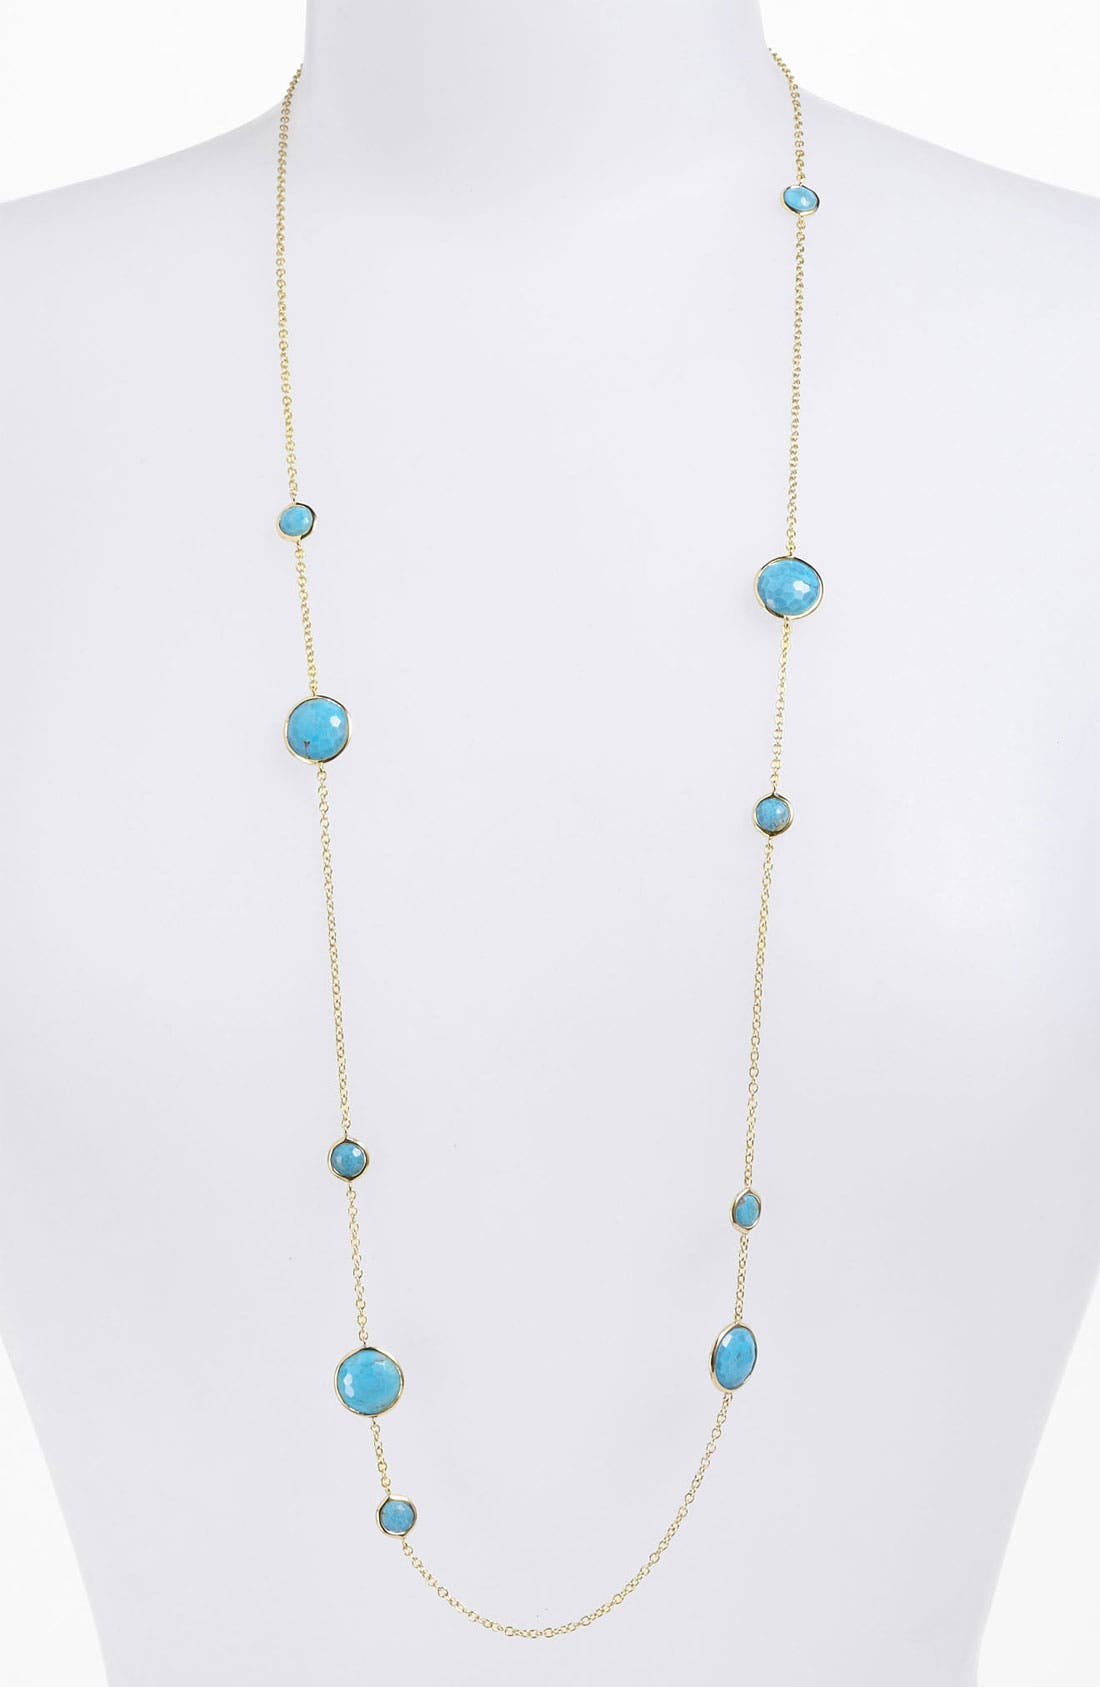 Alternate Image 1 Selected - Ippolita 'Lollipop' Long 10-Station 18k Gold Necklace